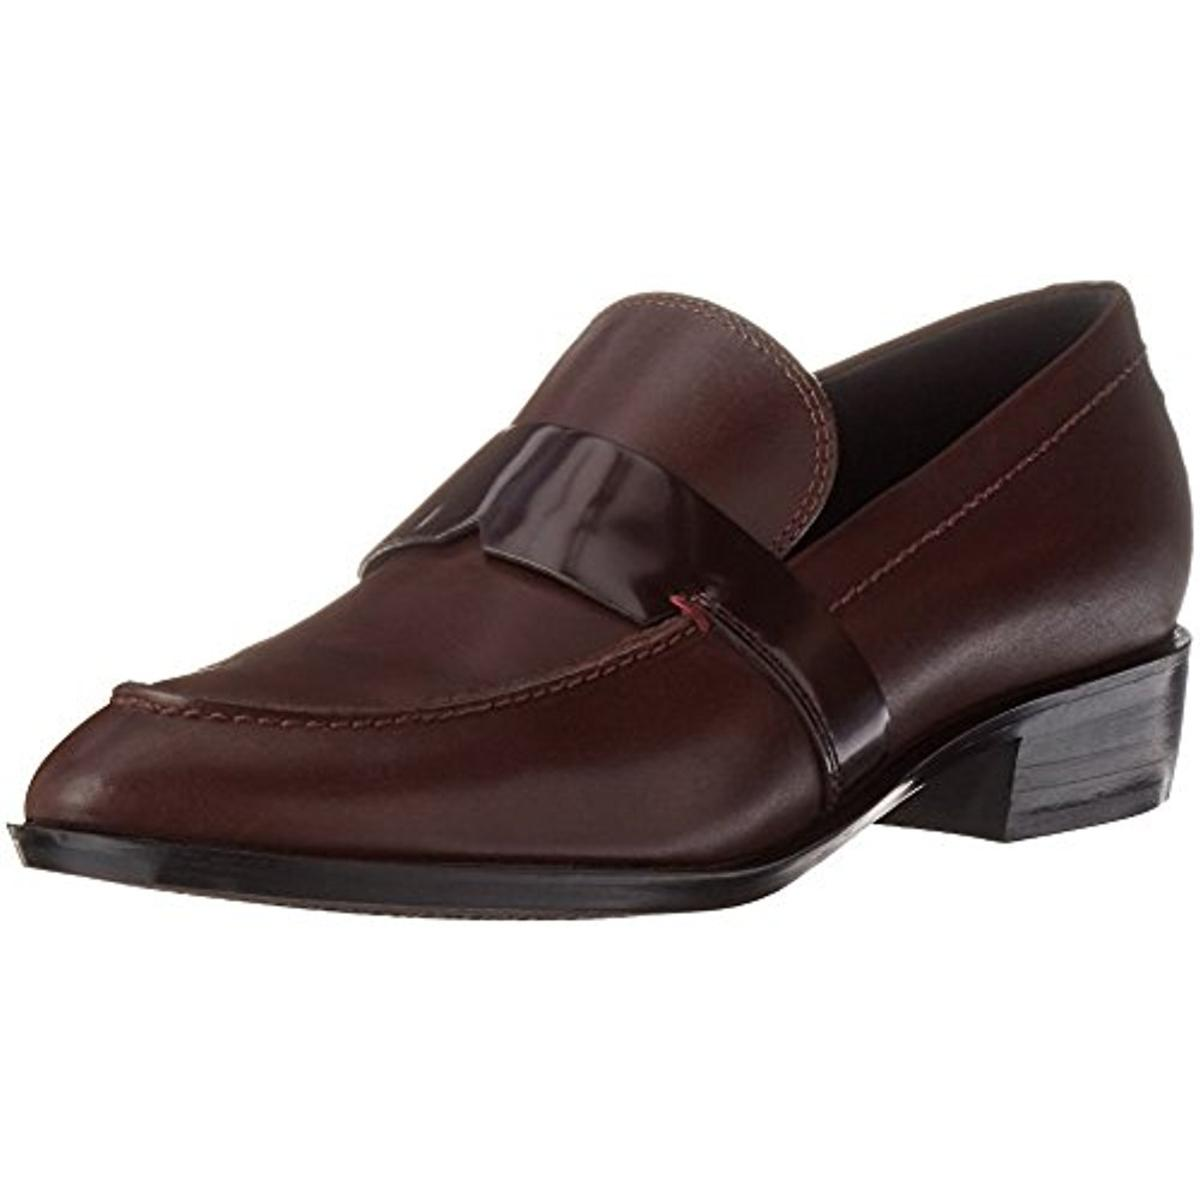 Geox Respira Womens Lover Leather Patent Trim Loafers